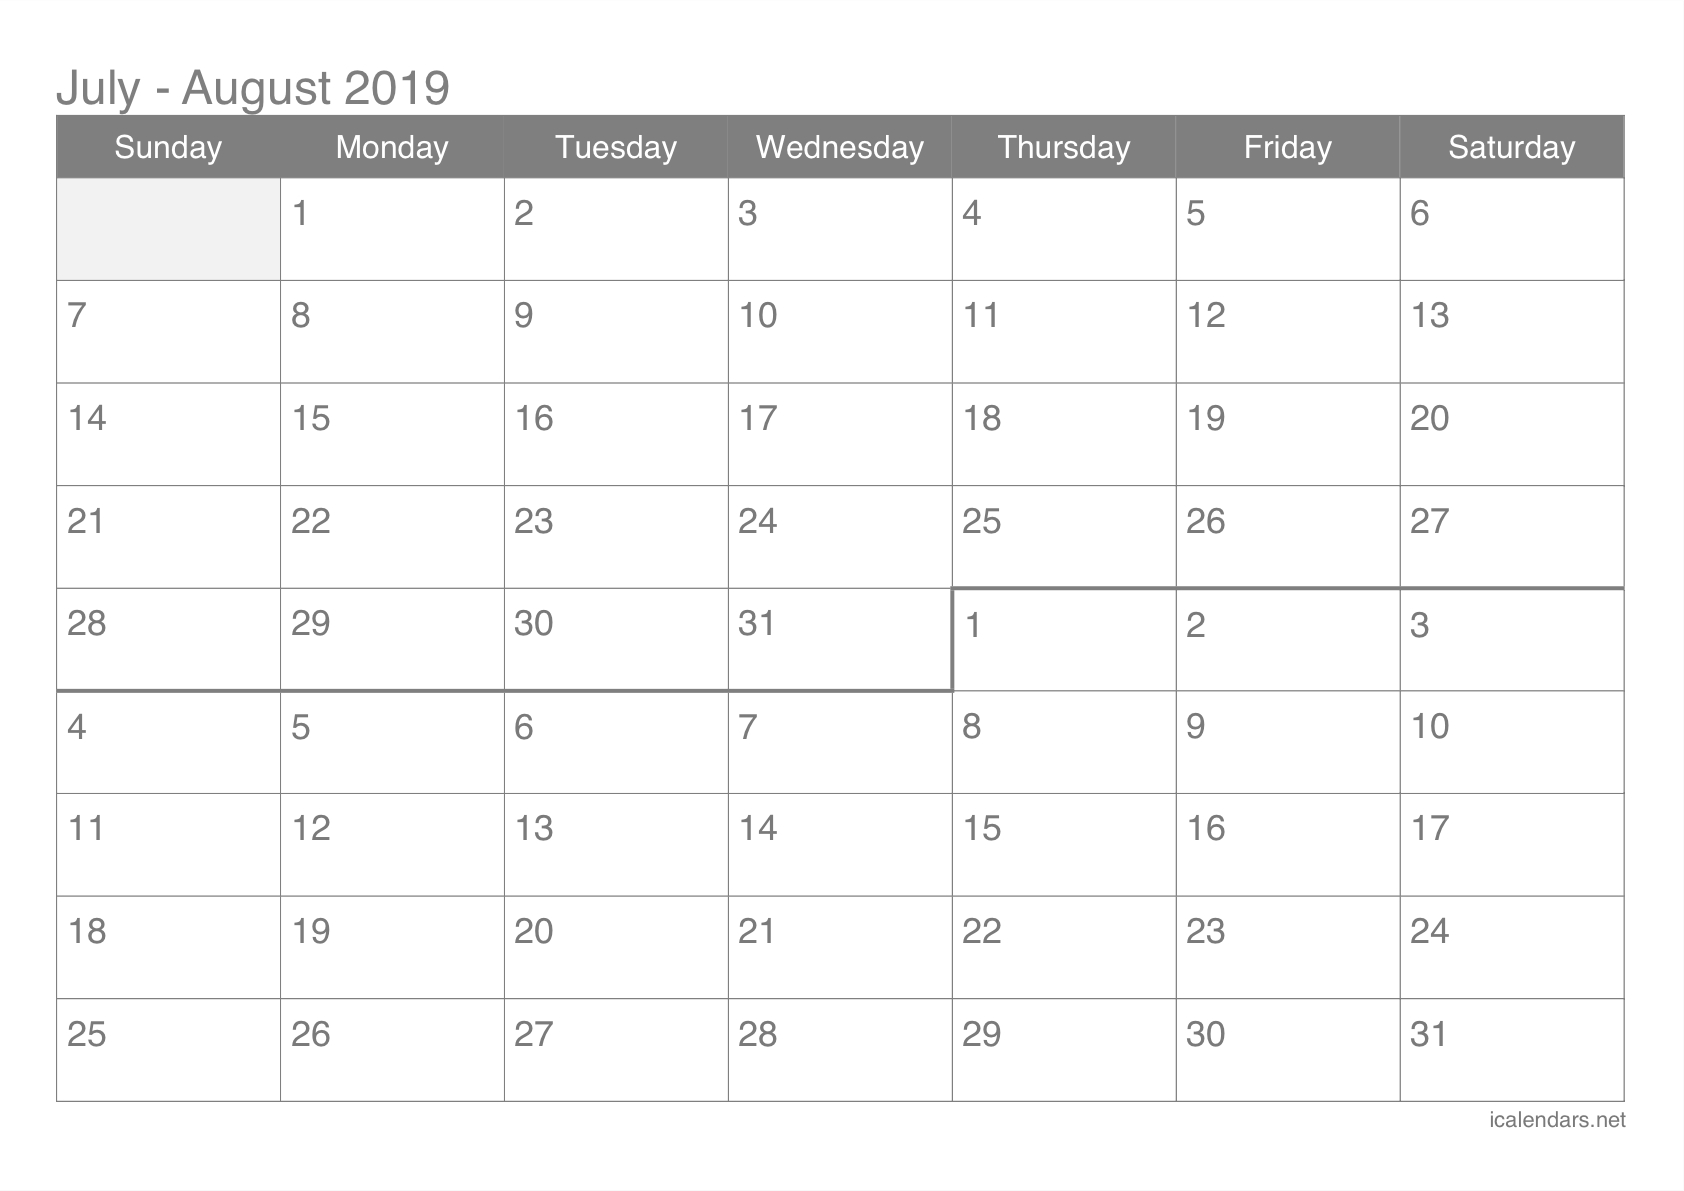 July And August 2019 Printable Calendar - Icalendars with July And August Blank Calendar